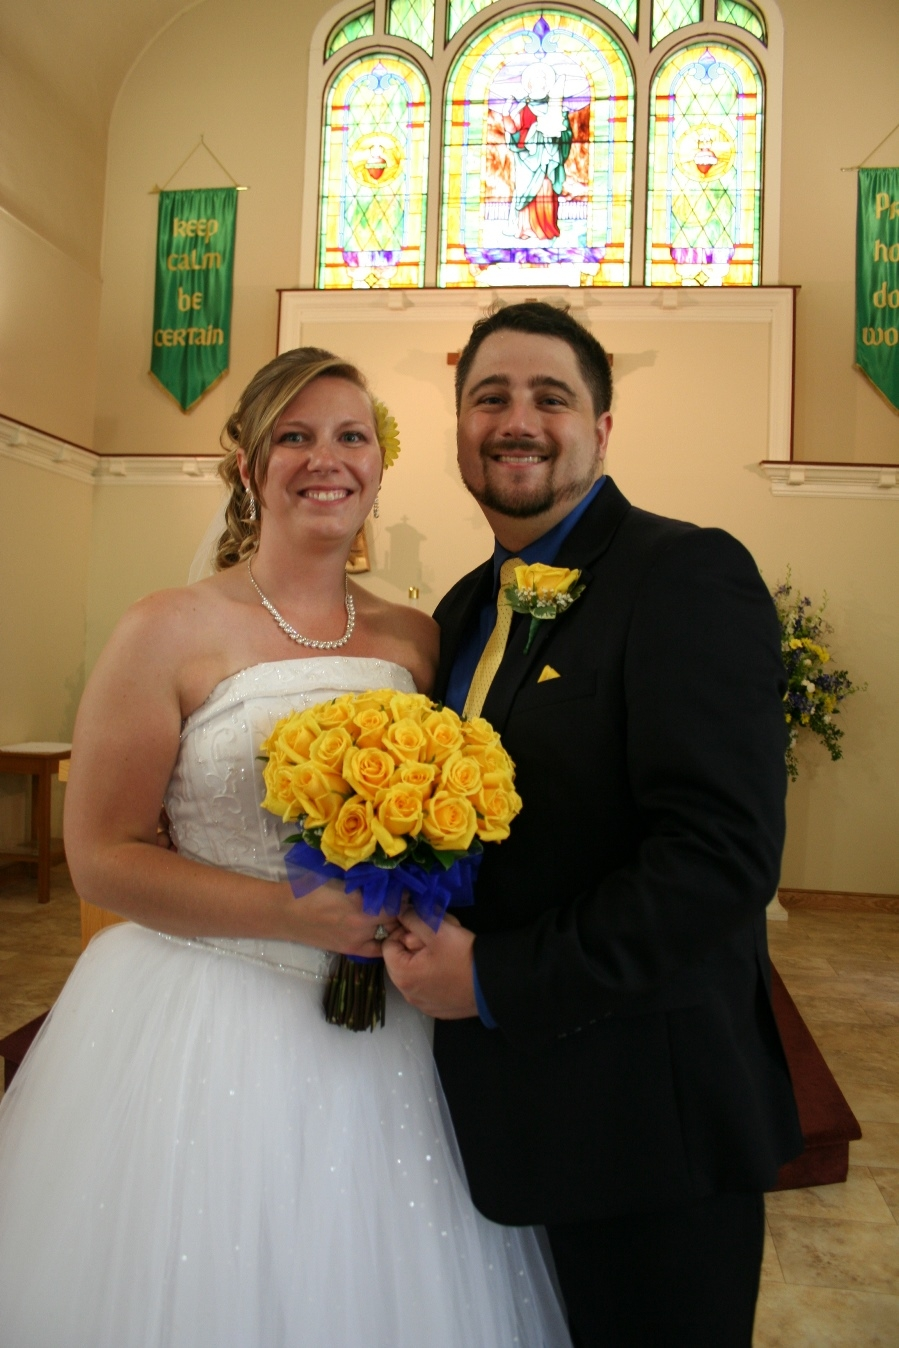 Danielle McGiveron and Timothy Dosch wed in St. Cecilia Catholic Church